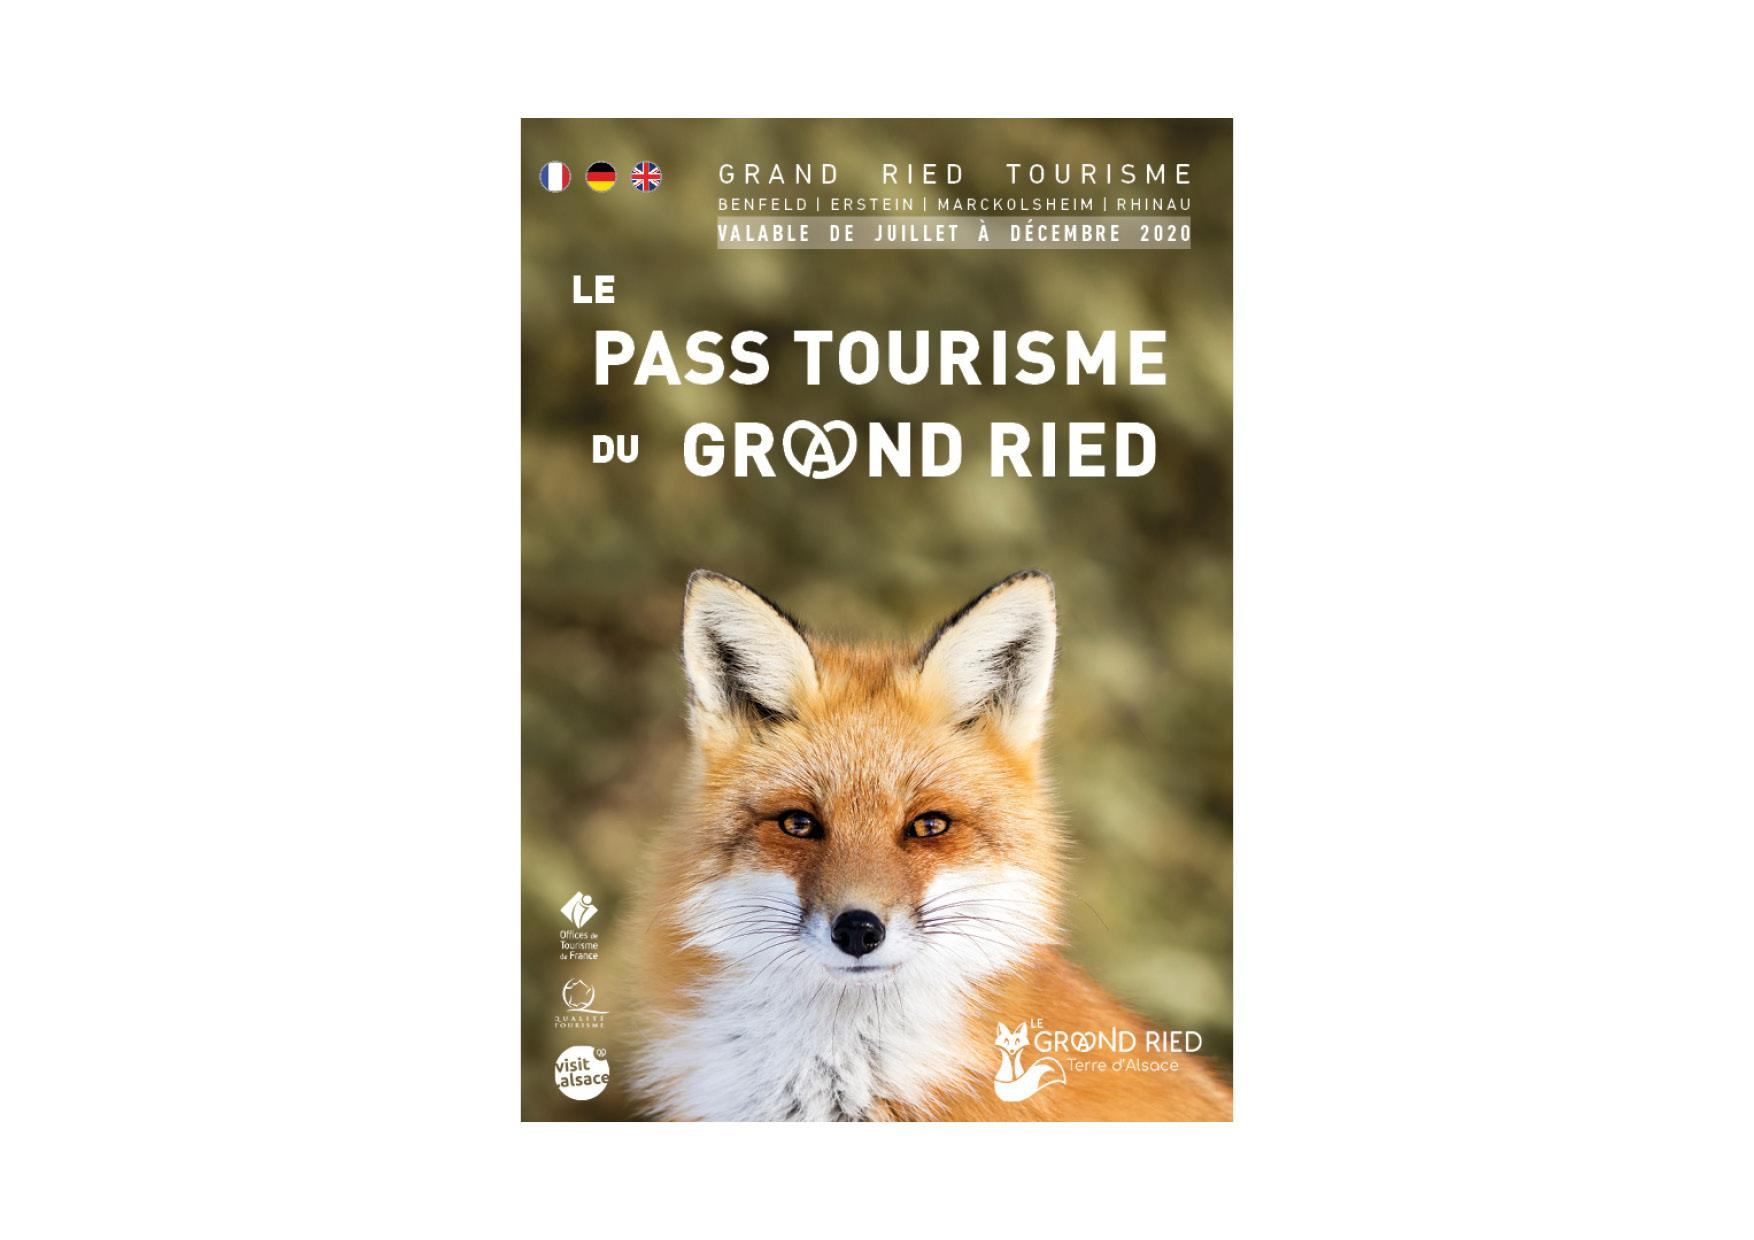 Le pass tourisme Grand Ried